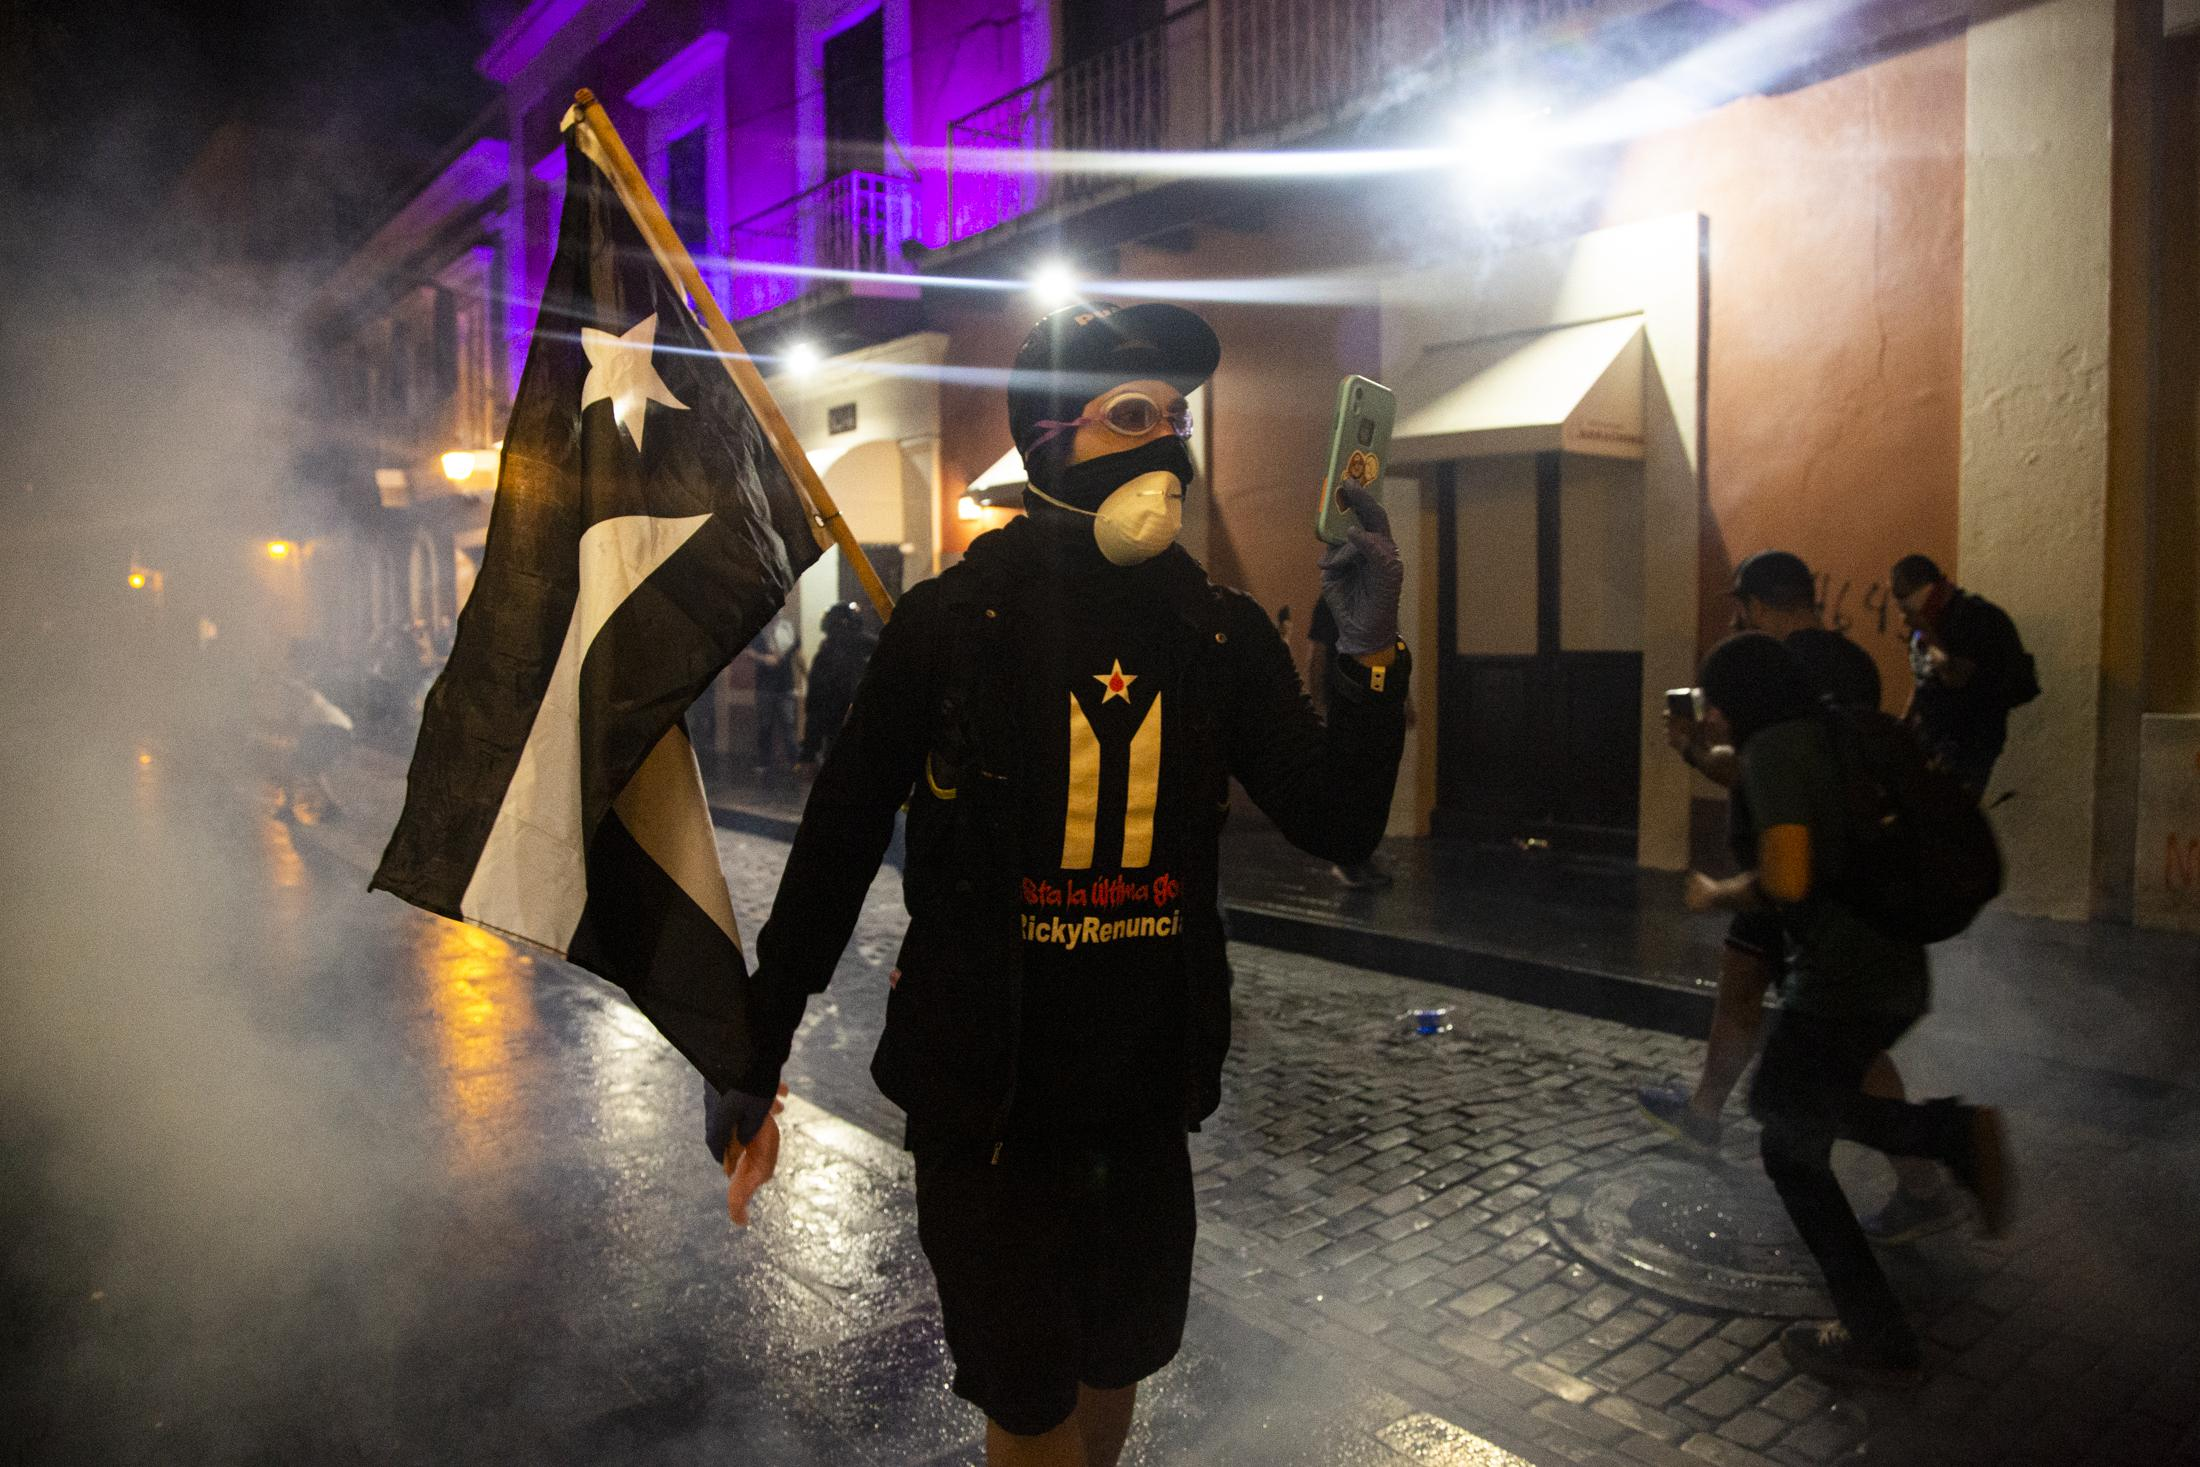 A protester records a riot police formation after teargas had been shot. Clashes erupted outside the governor�s mansion during a protest to demand the resignation of governor Wanda Vazquez Garced in San Juan, P.R., on Thursday, January 23, 2020. Last Saturday a storage with aid from hurricane Maria was found with undistributed supplies in Ponce, an area affected by the recent earthquakes. The protest today was called on by unions, artist Rene Perez Joglar, known as Resident, and baseball player, Yadier Molina. (Erika P. Rodriguez for The New York Times)